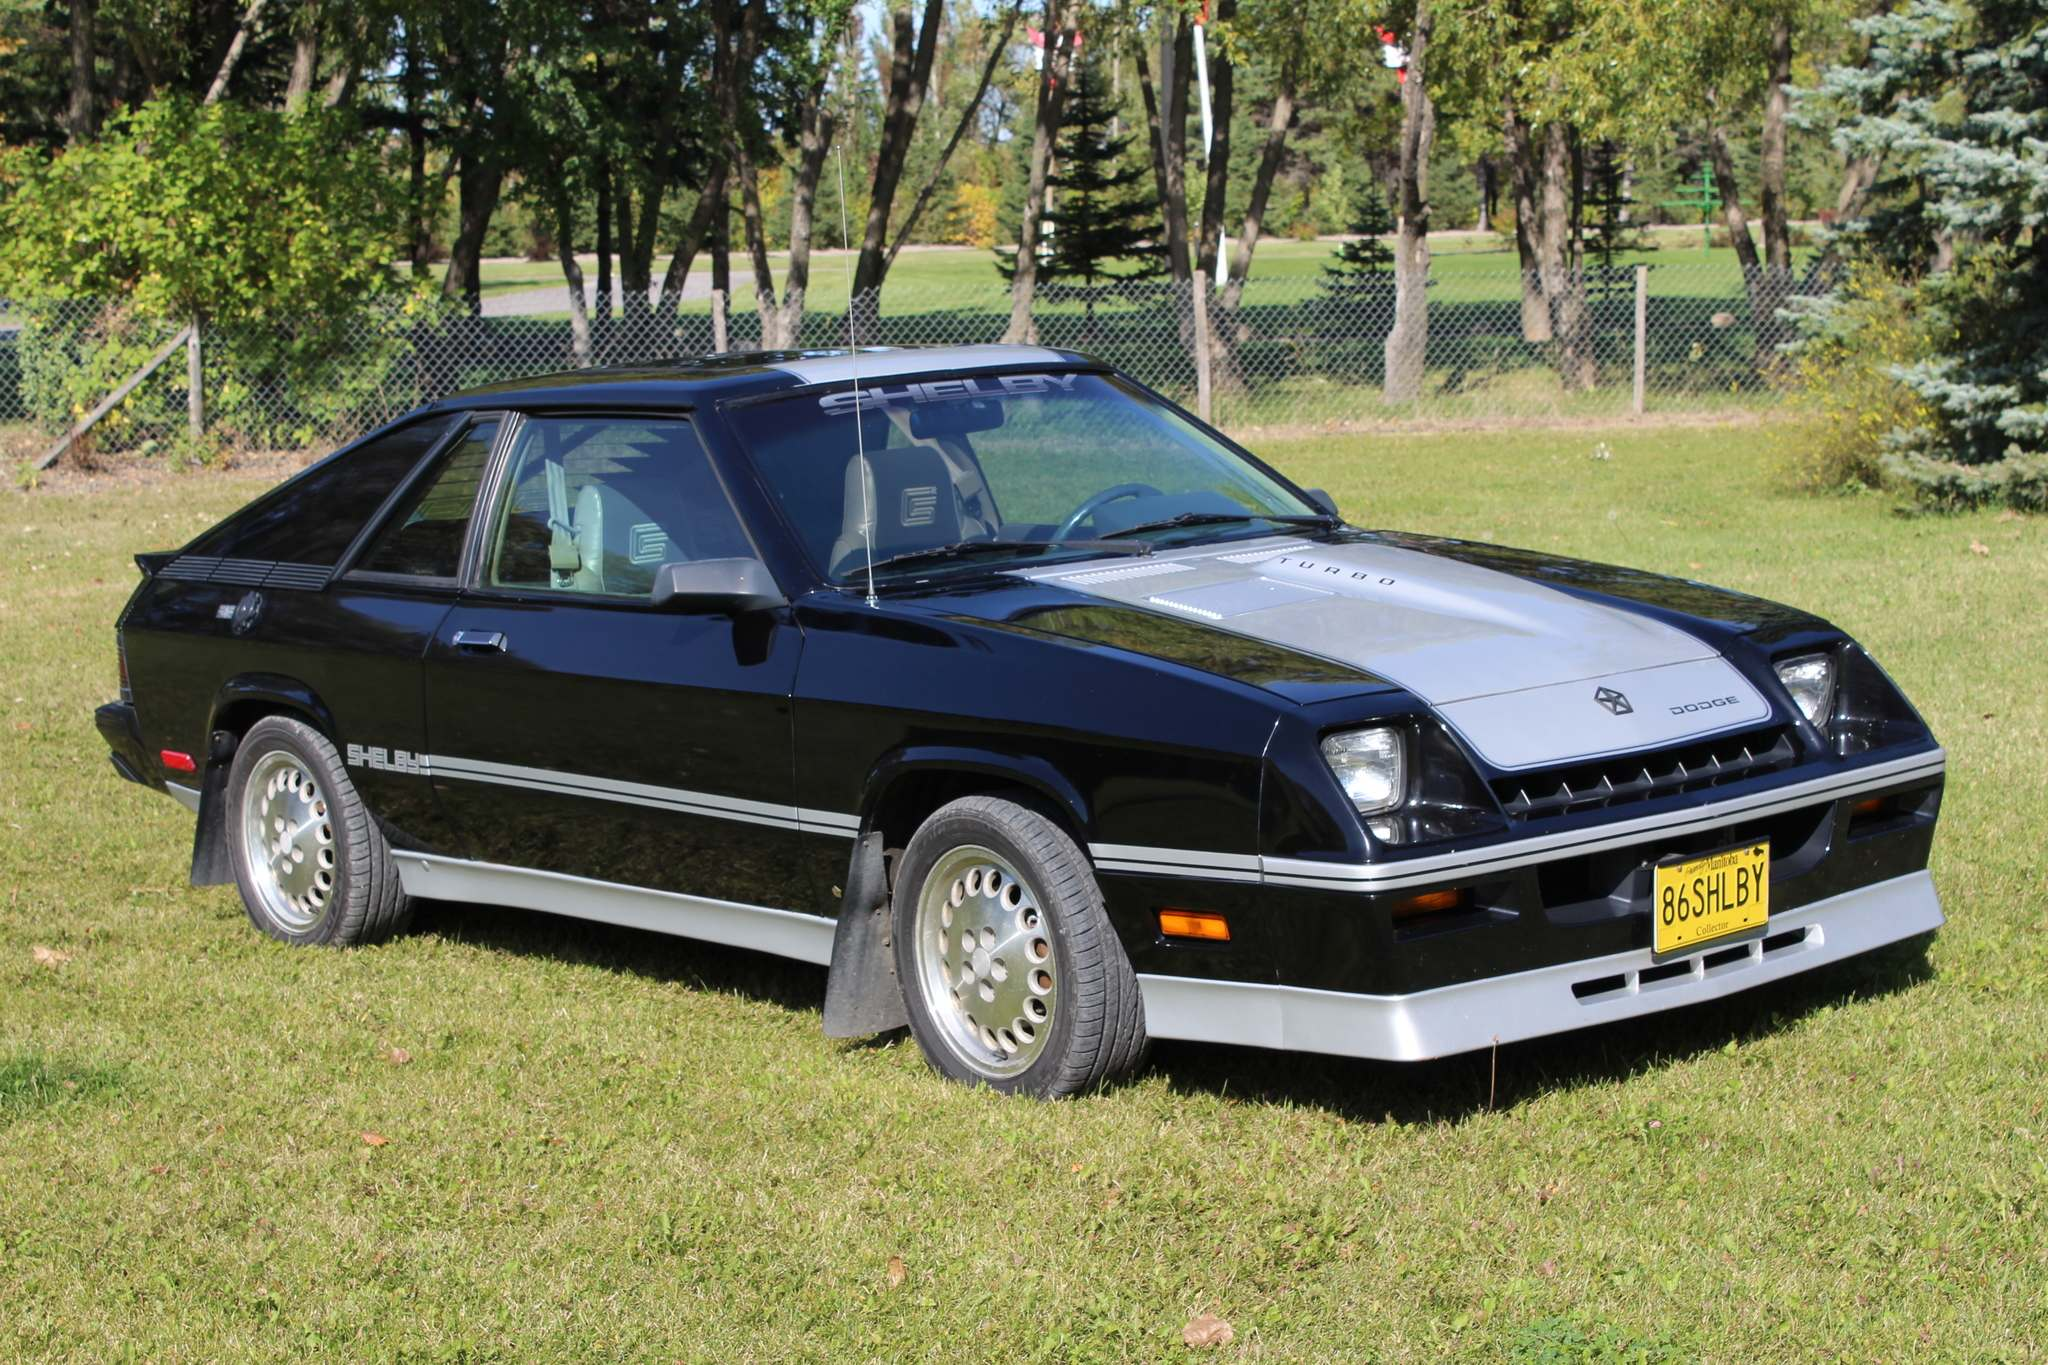 Larry D'Argis / Winnipeg Free PressThis 1986 Shelby Charger, now owned by James Blatz or Winnipeg, listed for $9,361 before optional extras when it was first purchased in Regina.